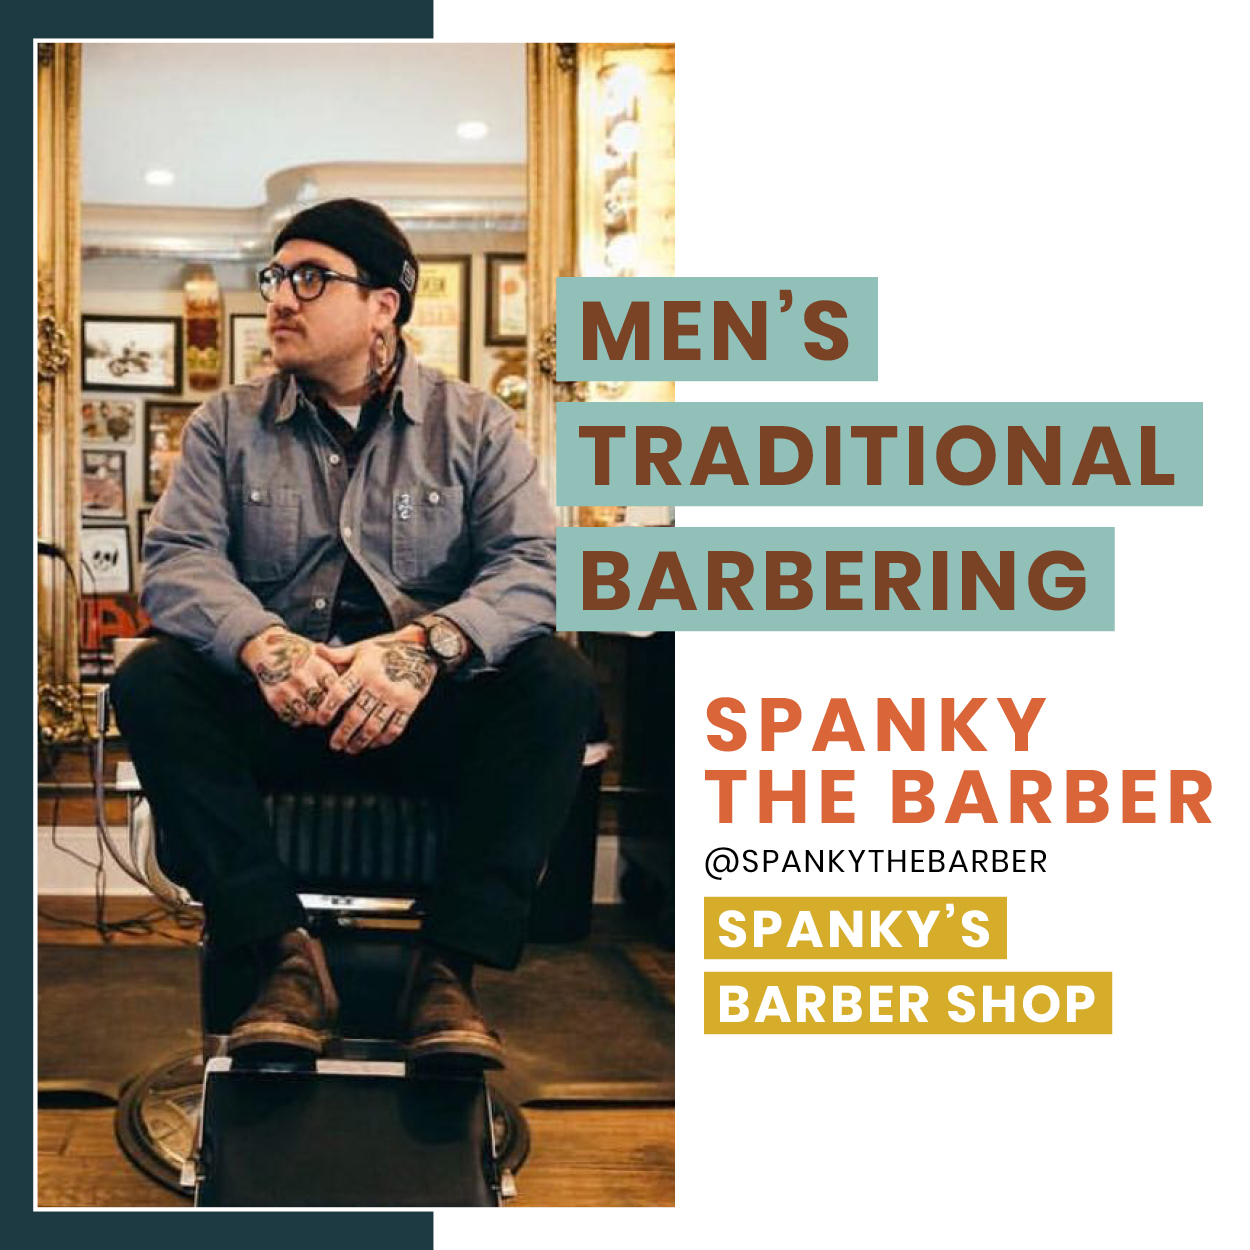 - Learn a 7 step haircut method which includes, trimming and shaping a beard correctly, detail work to make you a stand out, client consultation and interaction while they're in your chair, educating them on products, and ending the haircut in a manner in which they will return.More about Spanky